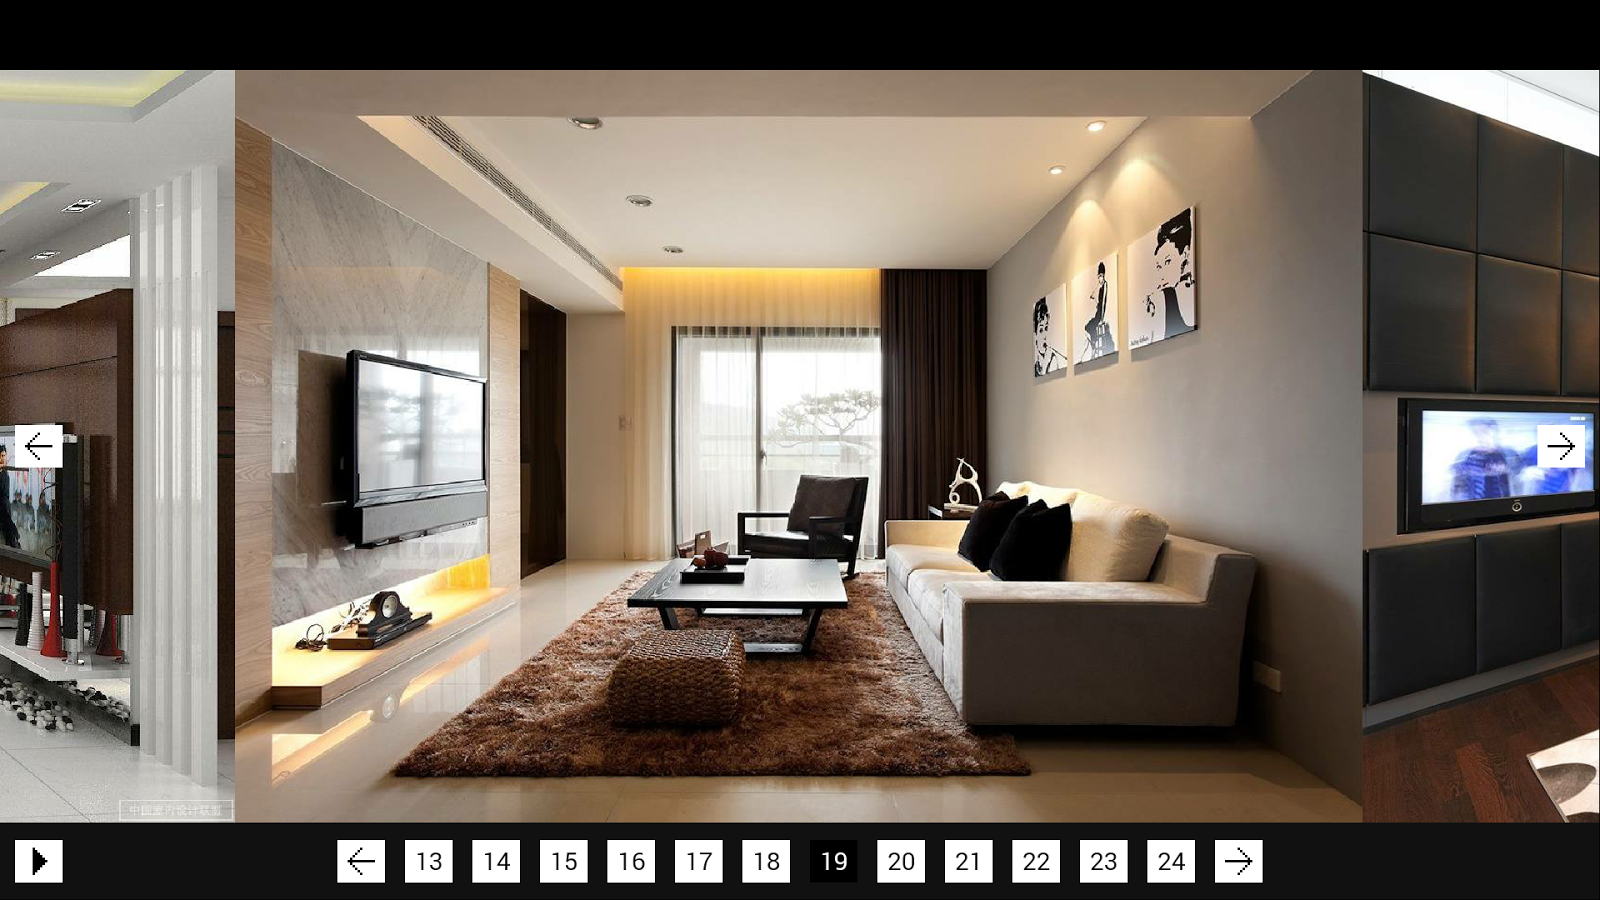 Interior Home Decorating home interior design - android apps on google play